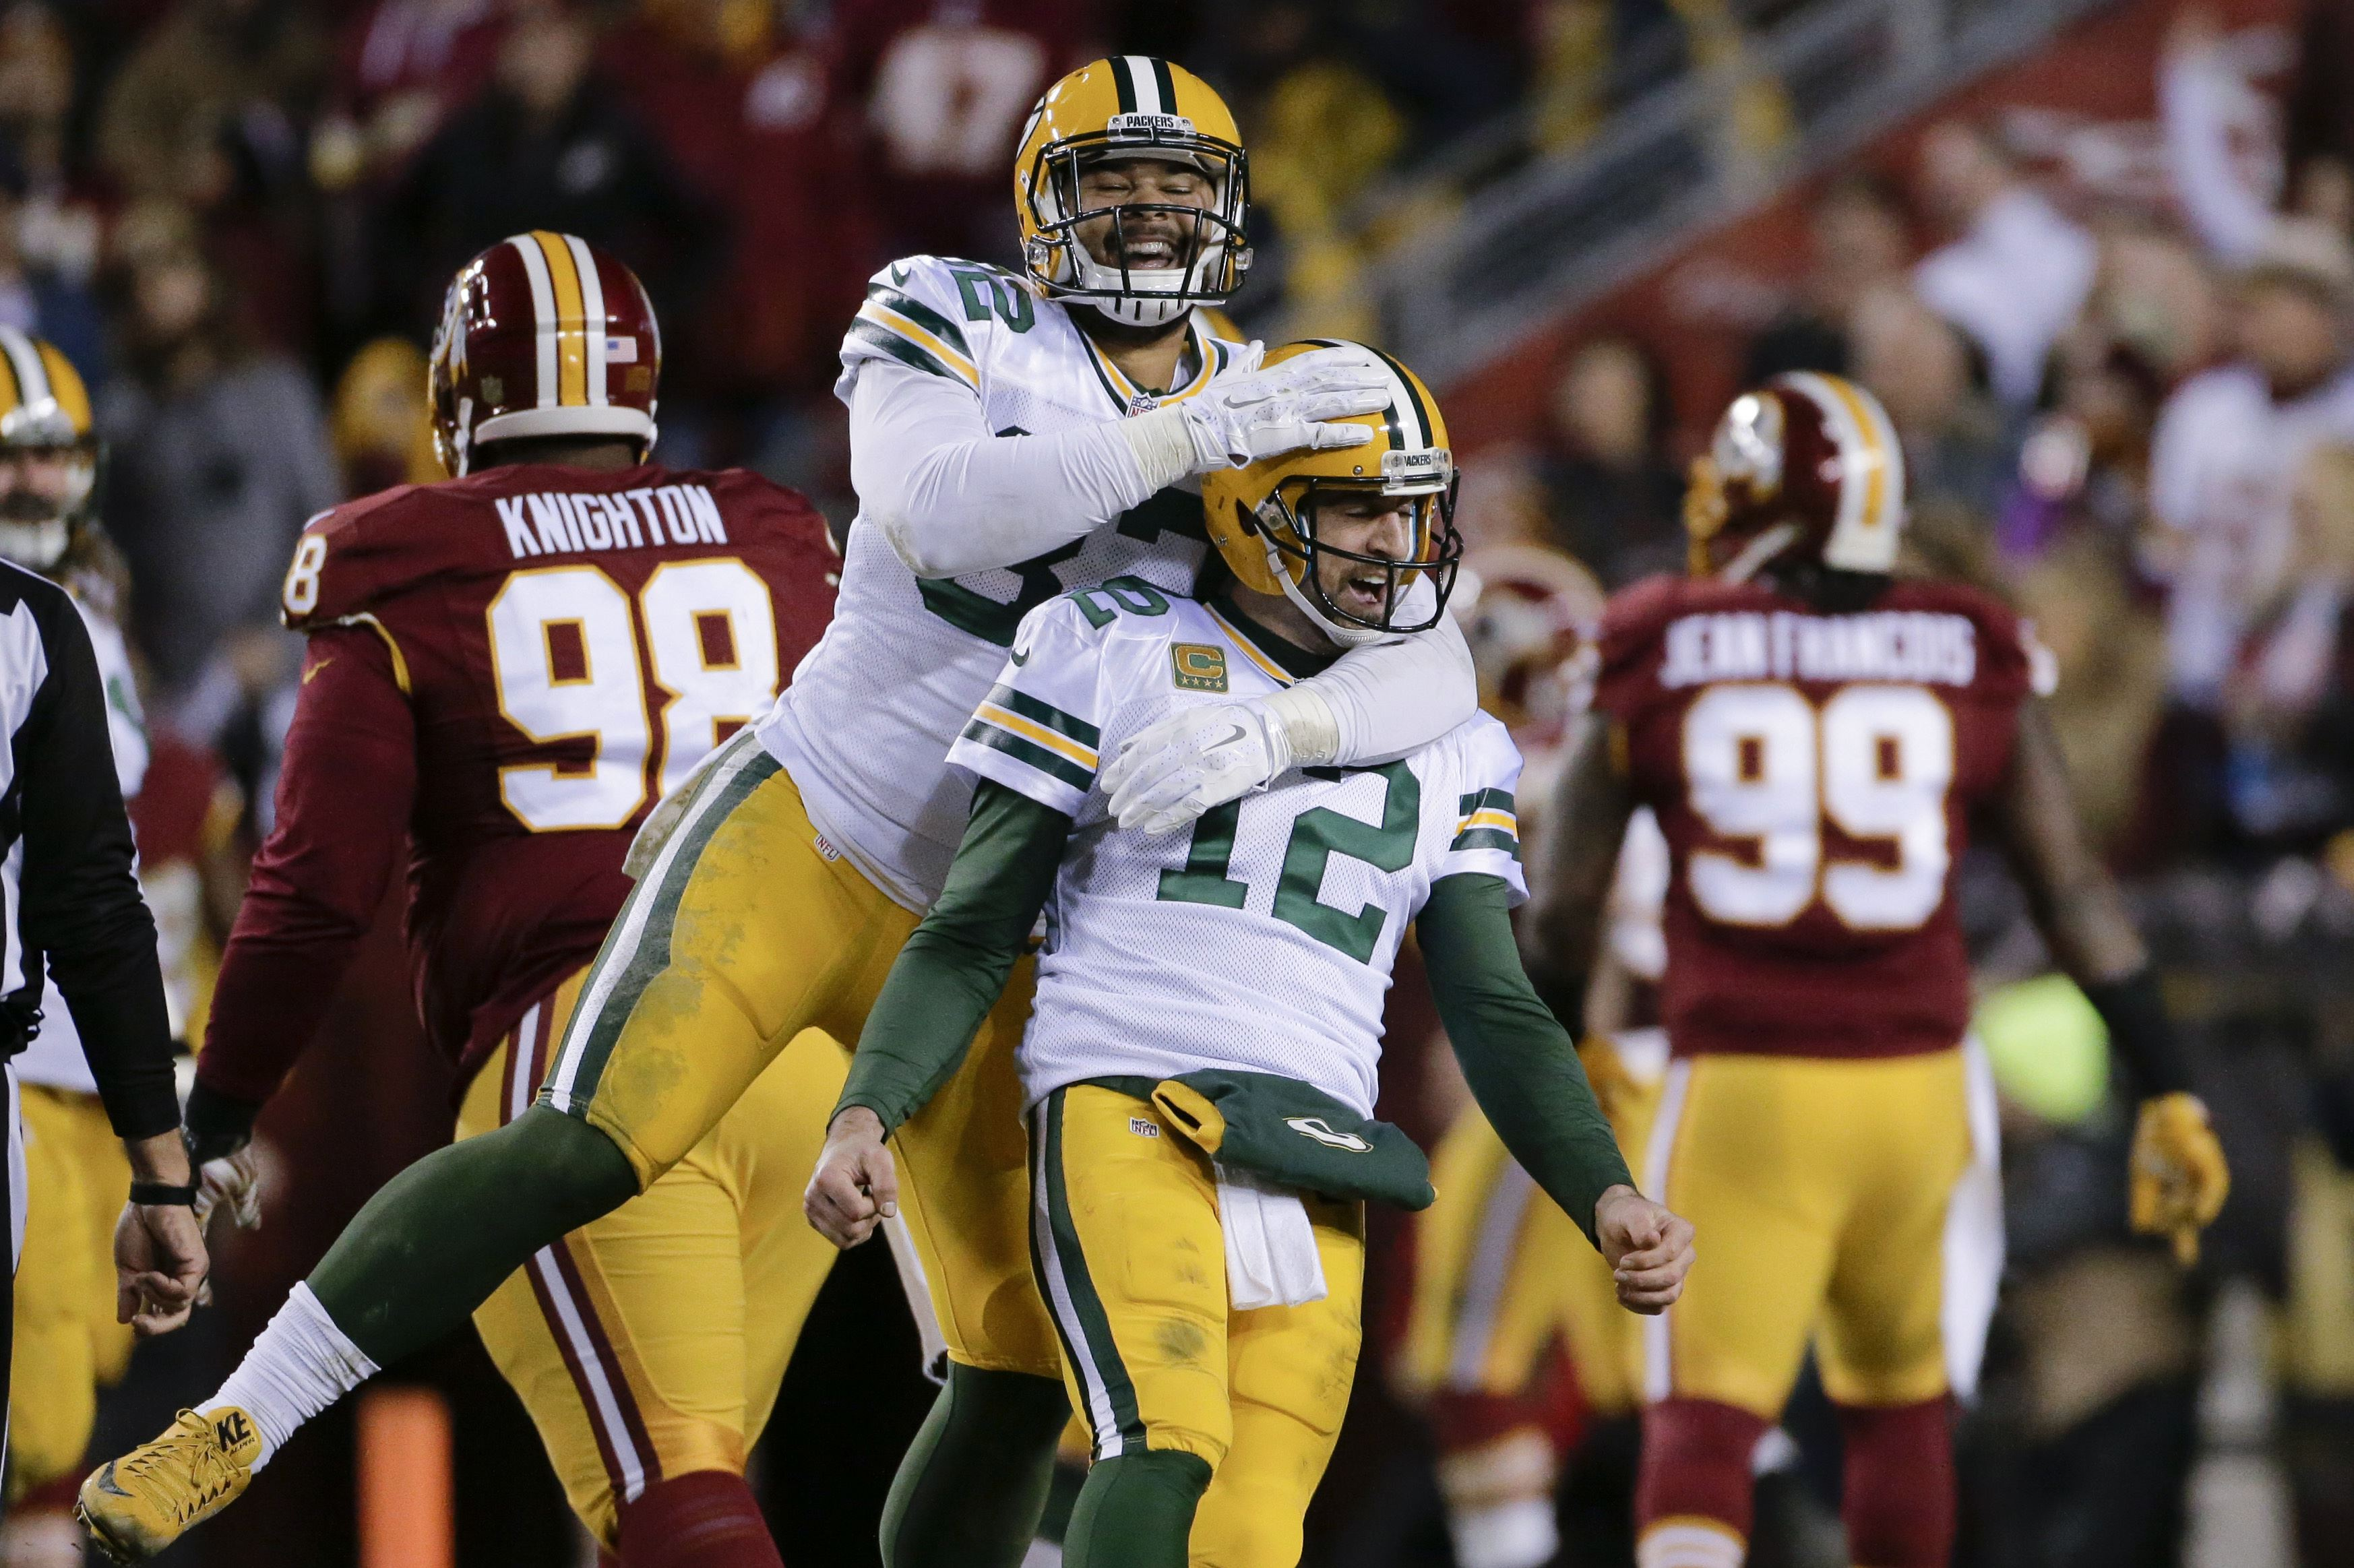 [NFL] Wild Card: Rodgers versione playoff (Green Bay Packers – Washington Redskins 35-18)